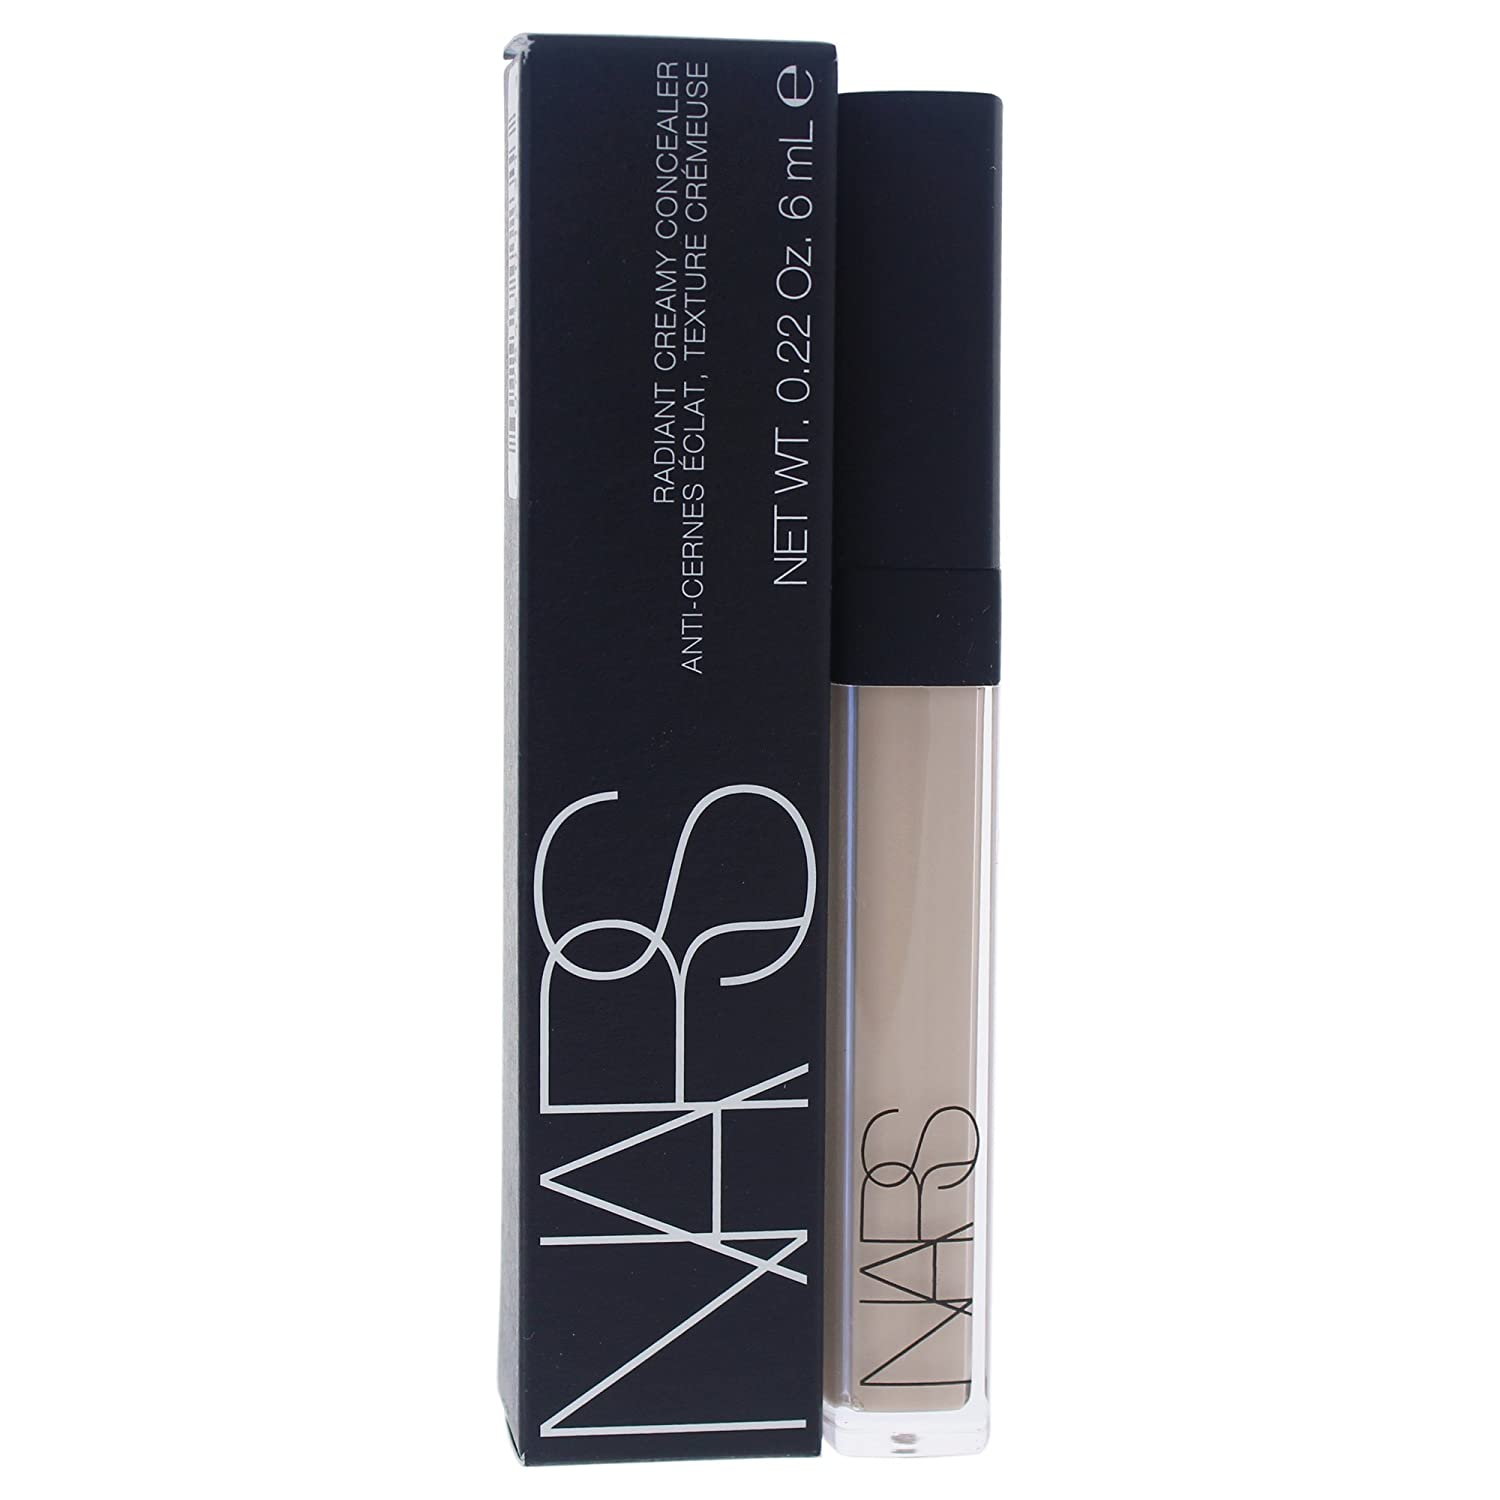 NARS Radiant Creamy Concealer - Chantilly 6ml 017361402602